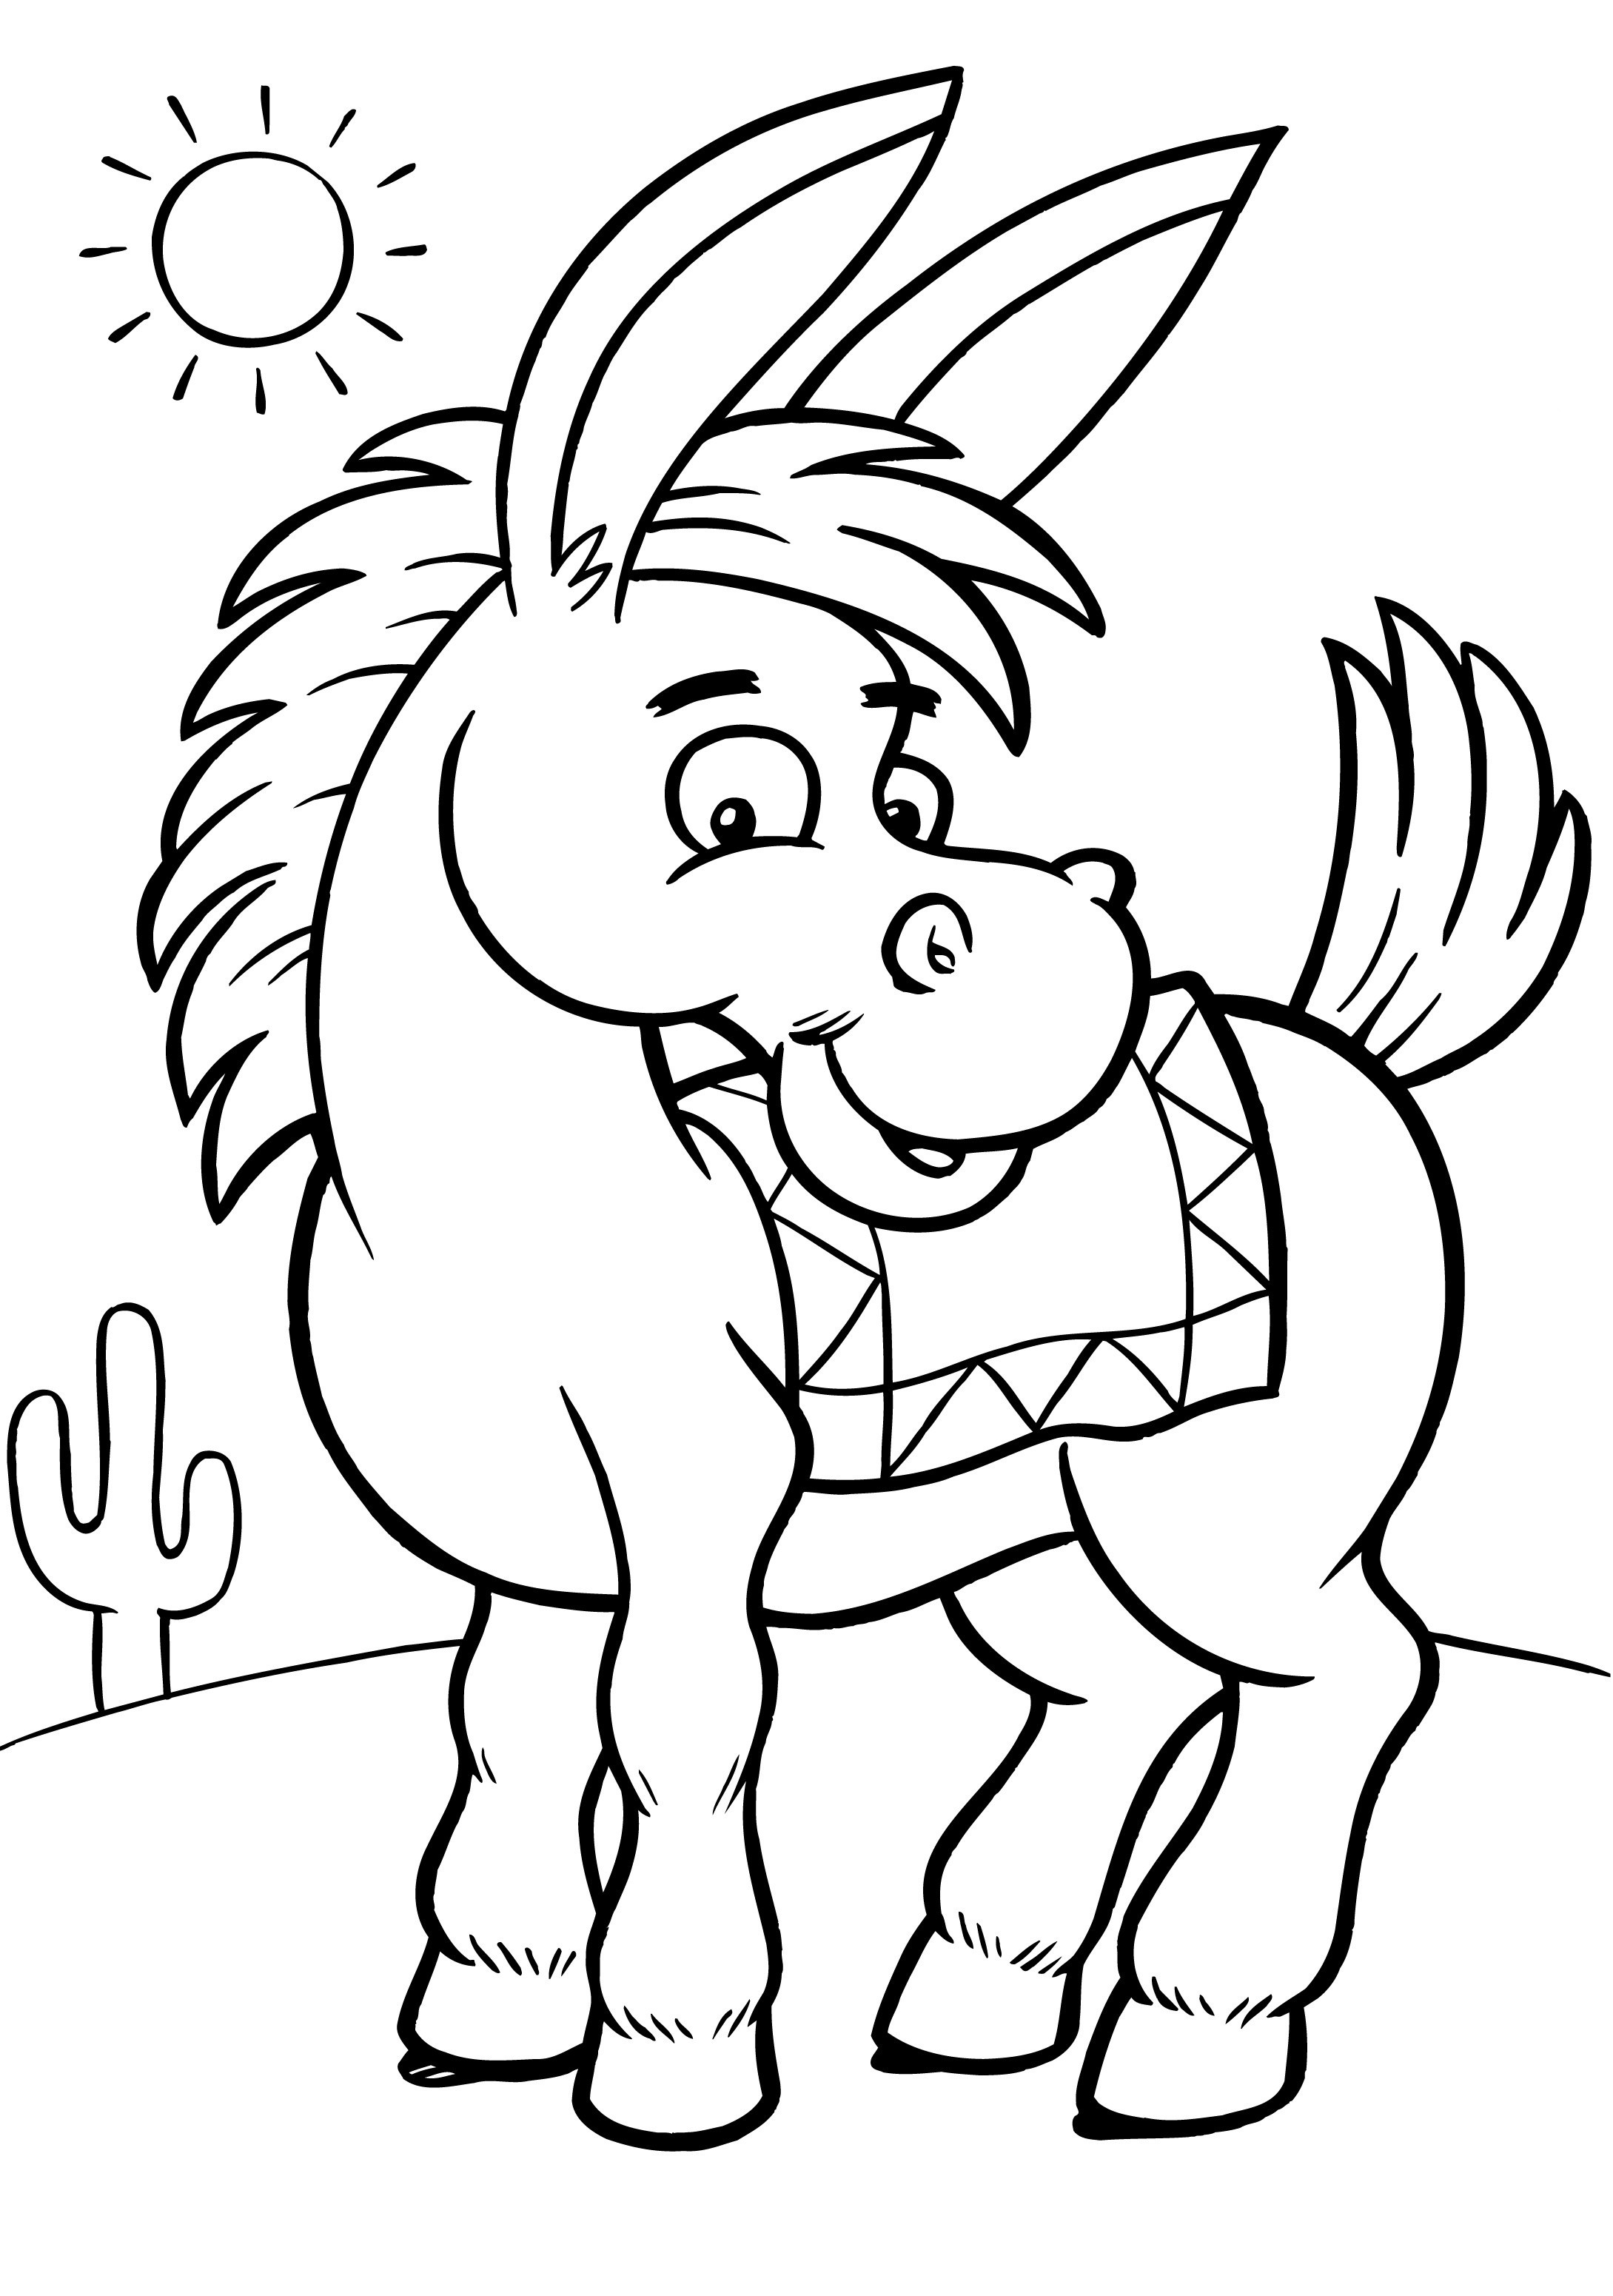 Coloring Pages For Kides  Free Printable Donkey Coloring Pages For Kids